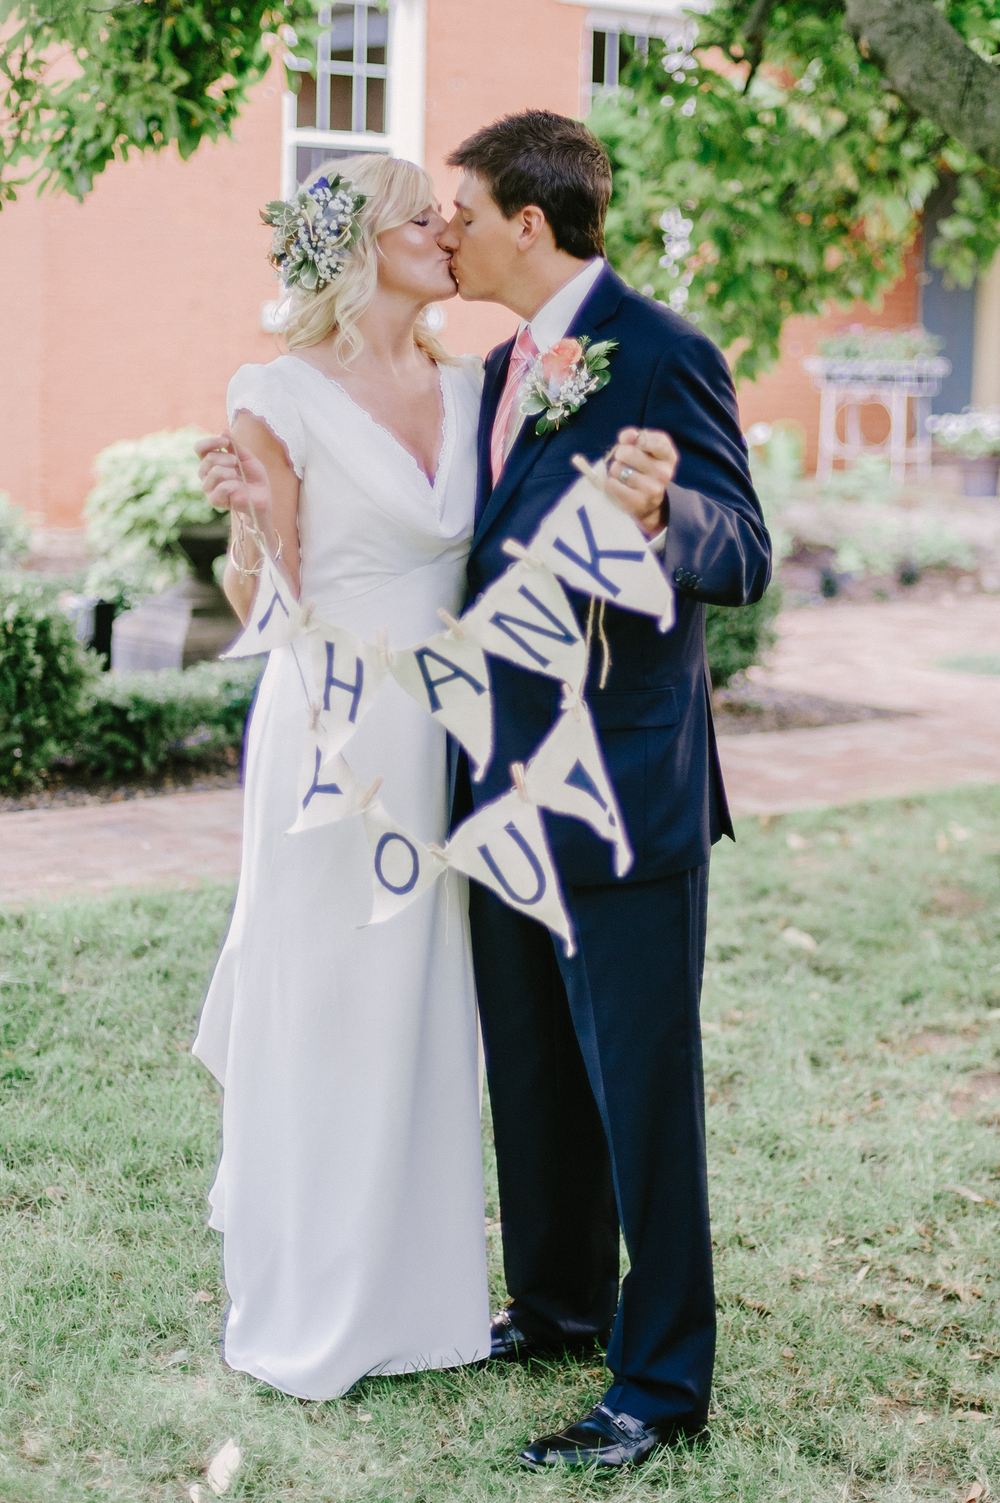 Willow Tree Wedding in Dayton, OH by Andrea Dozier